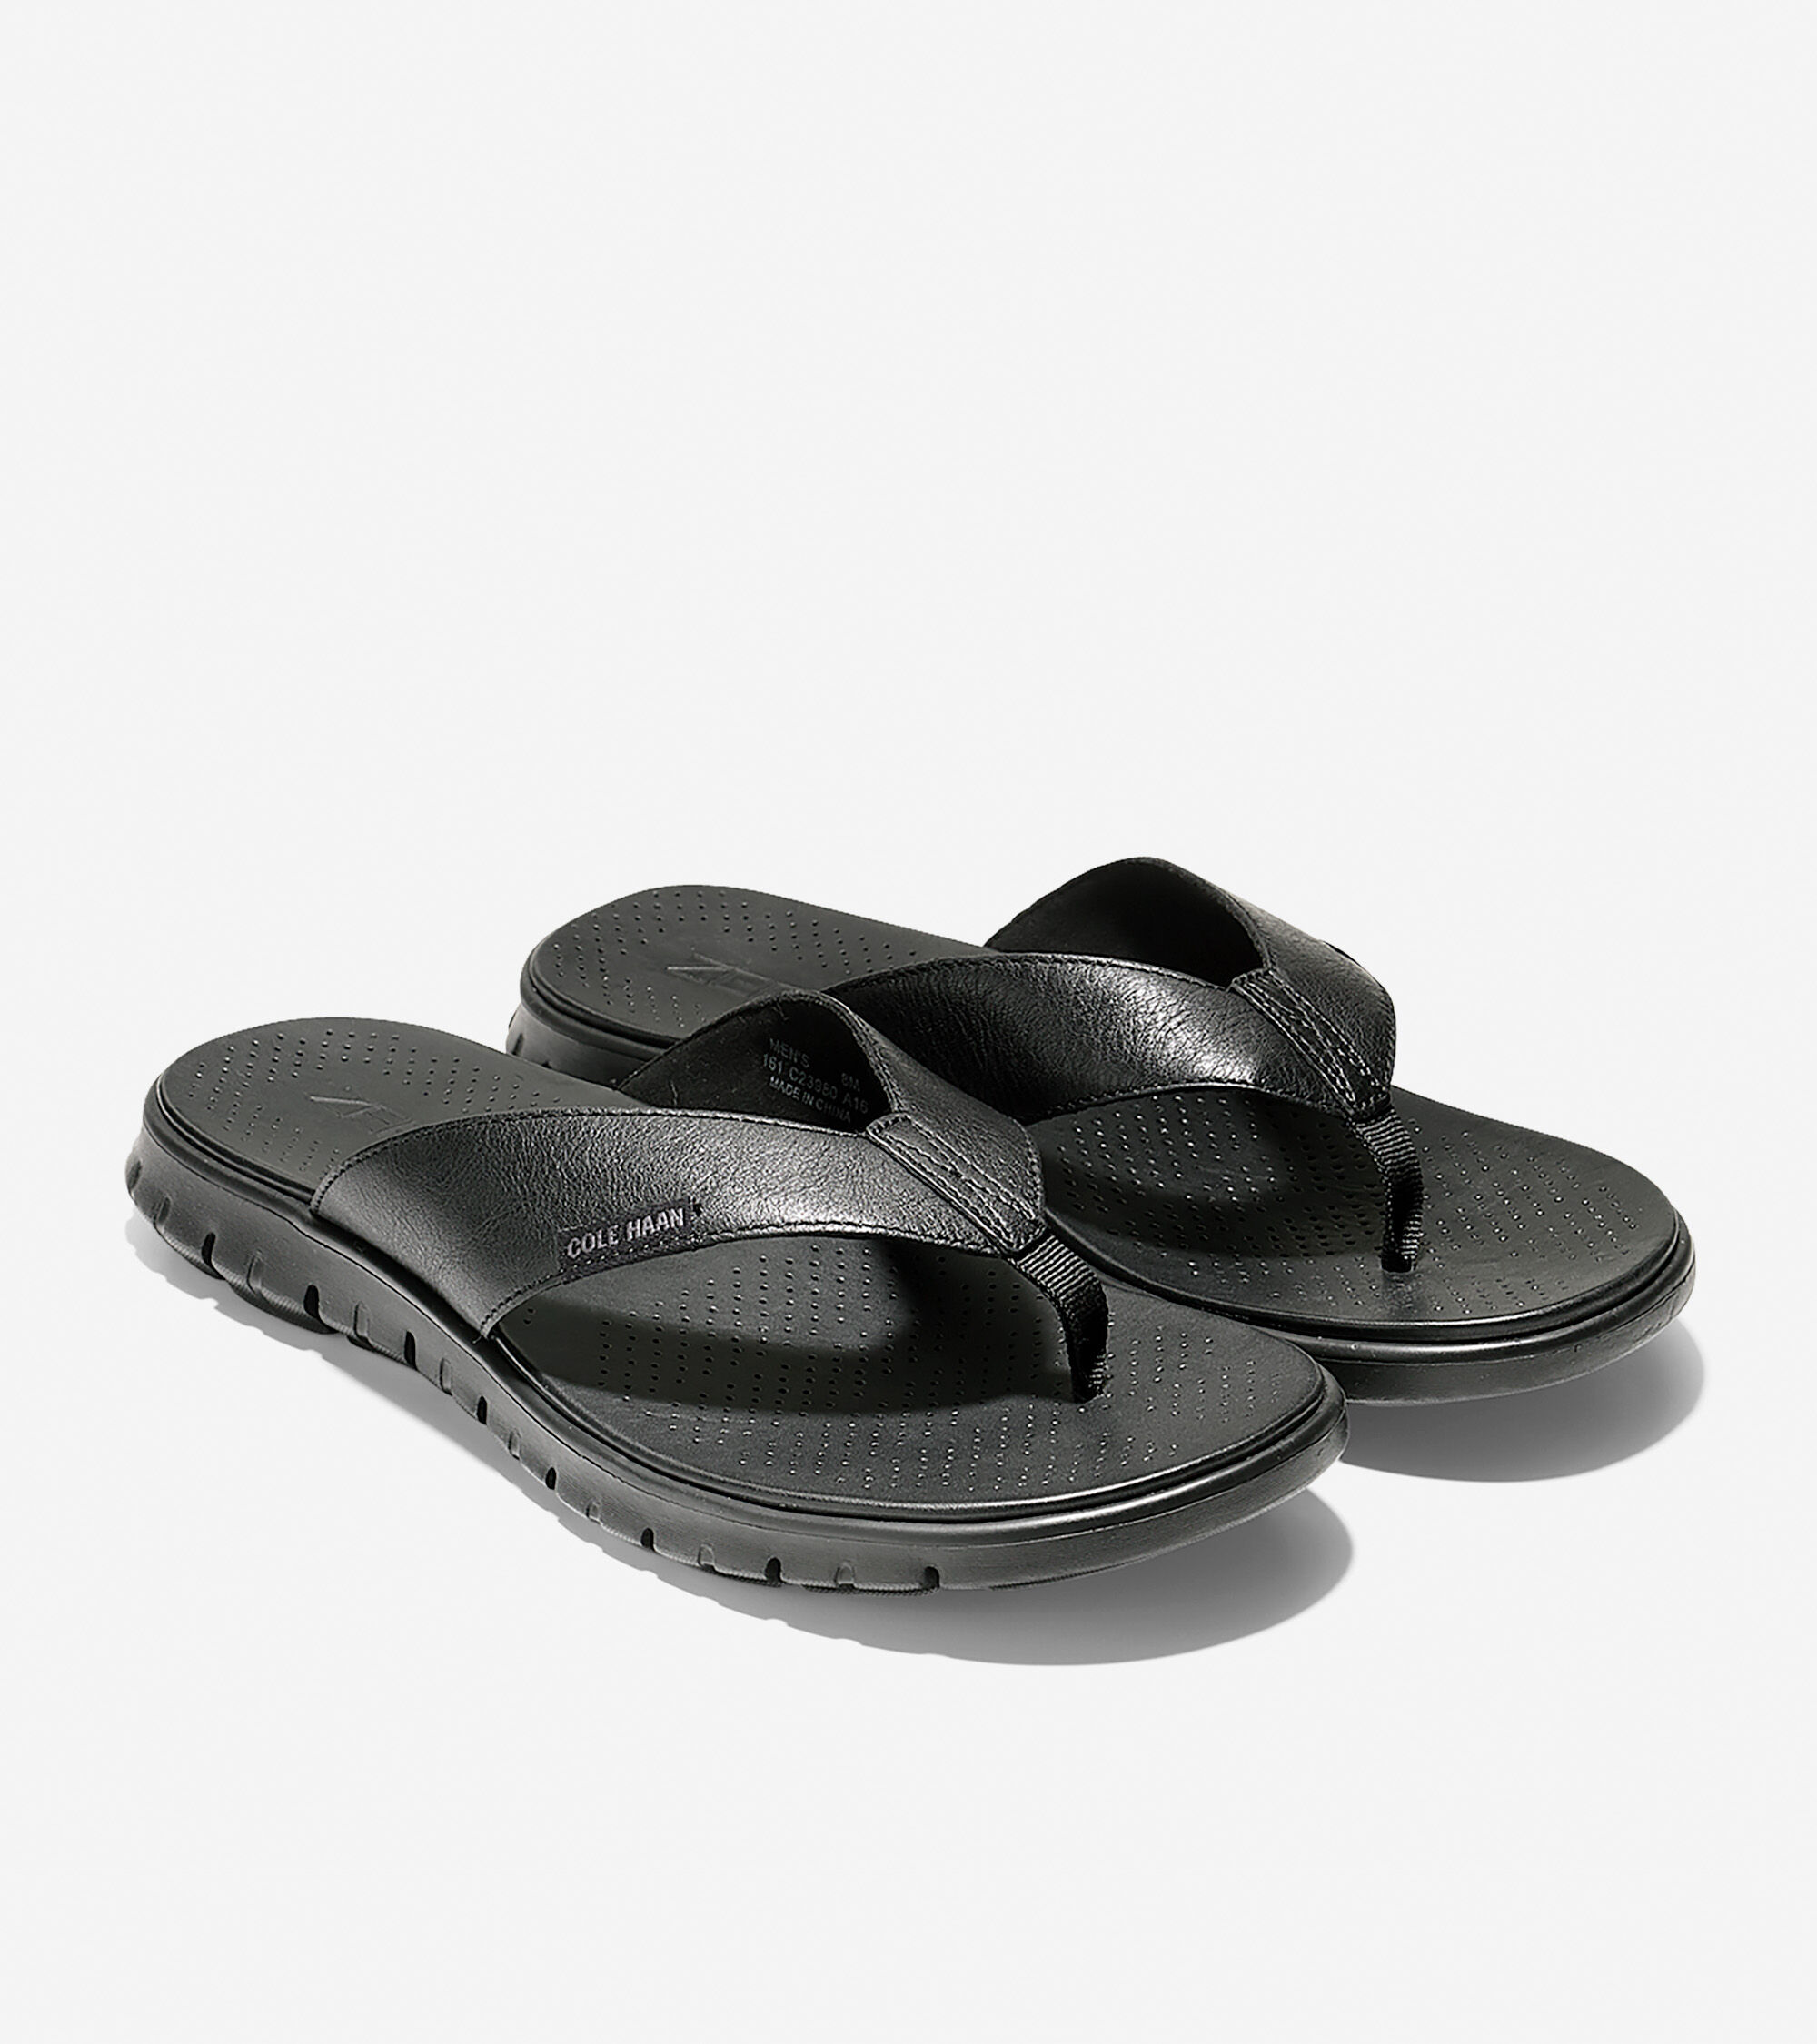 b1cf5cd8357 ... Men s ZERØGRAND Thong Sandal  Men s ZERØGRAND Thong Sandal.  COLEHAAN